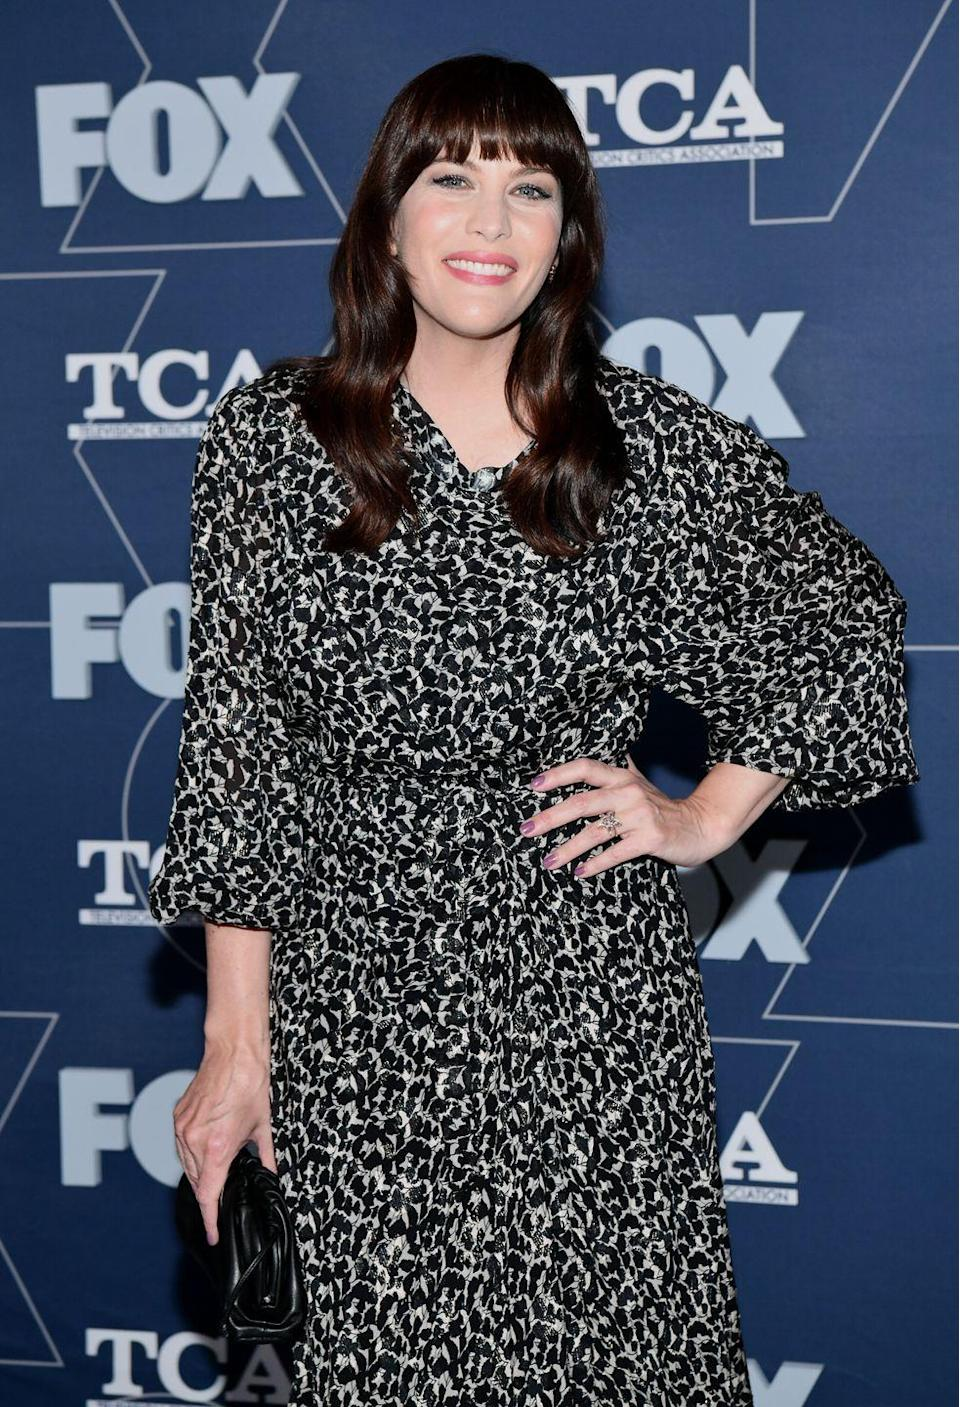 """<p>Although Liv Tyler filmed scenes for <em>Everyone Says I Love You</em>'s with Lukas Haas, the actress didn't appear in the final cut. It was later revealed that <a href=""""https://www.imdb.com/title/tt0116242/trivia"""" rel=""""nofollow noopener"""" target=""""_blank"""" data-ylk=""""slk:Tracey Ullman also filmed"""" class=""""link rapid-noclick-resp"""">Tracey Ullman also filmed</a> a subplot for the Woody Allen film, but both actresses were cut in the interest of shortening the running time.  </p>"""